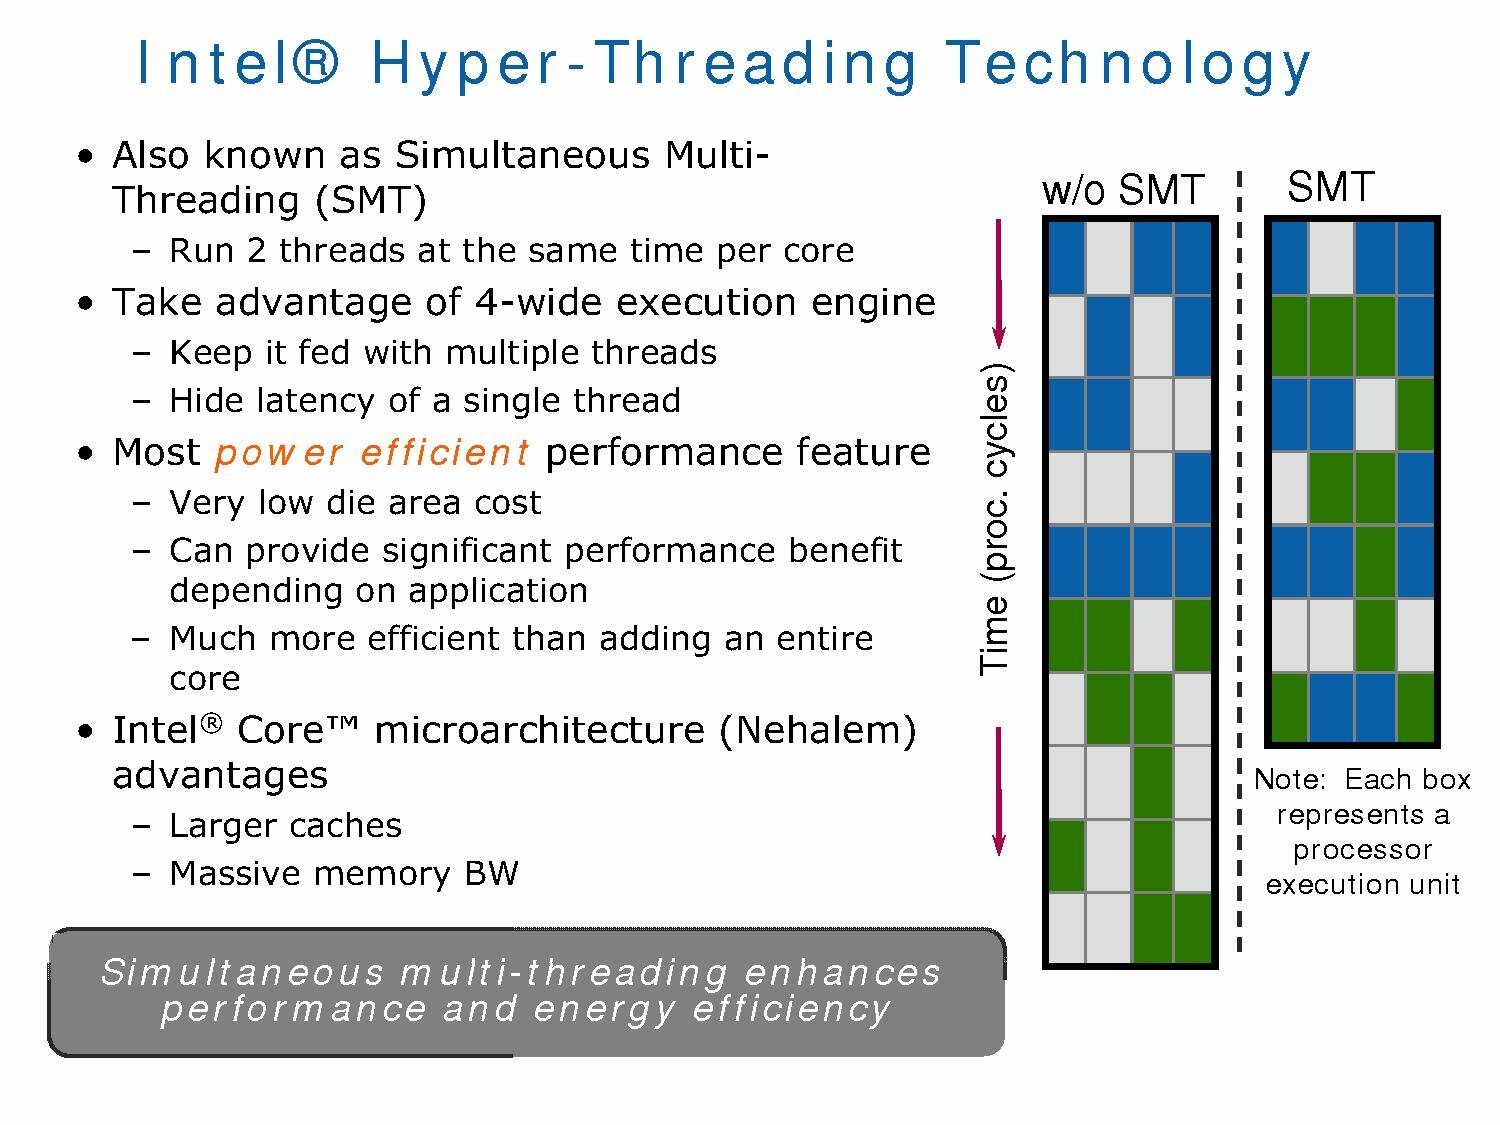 nehalem dating Learn the details on intel's 45nm nehalem processor, which features an new system interface: ddr3 integrated memory controllers and csi or quickpath interconnects.